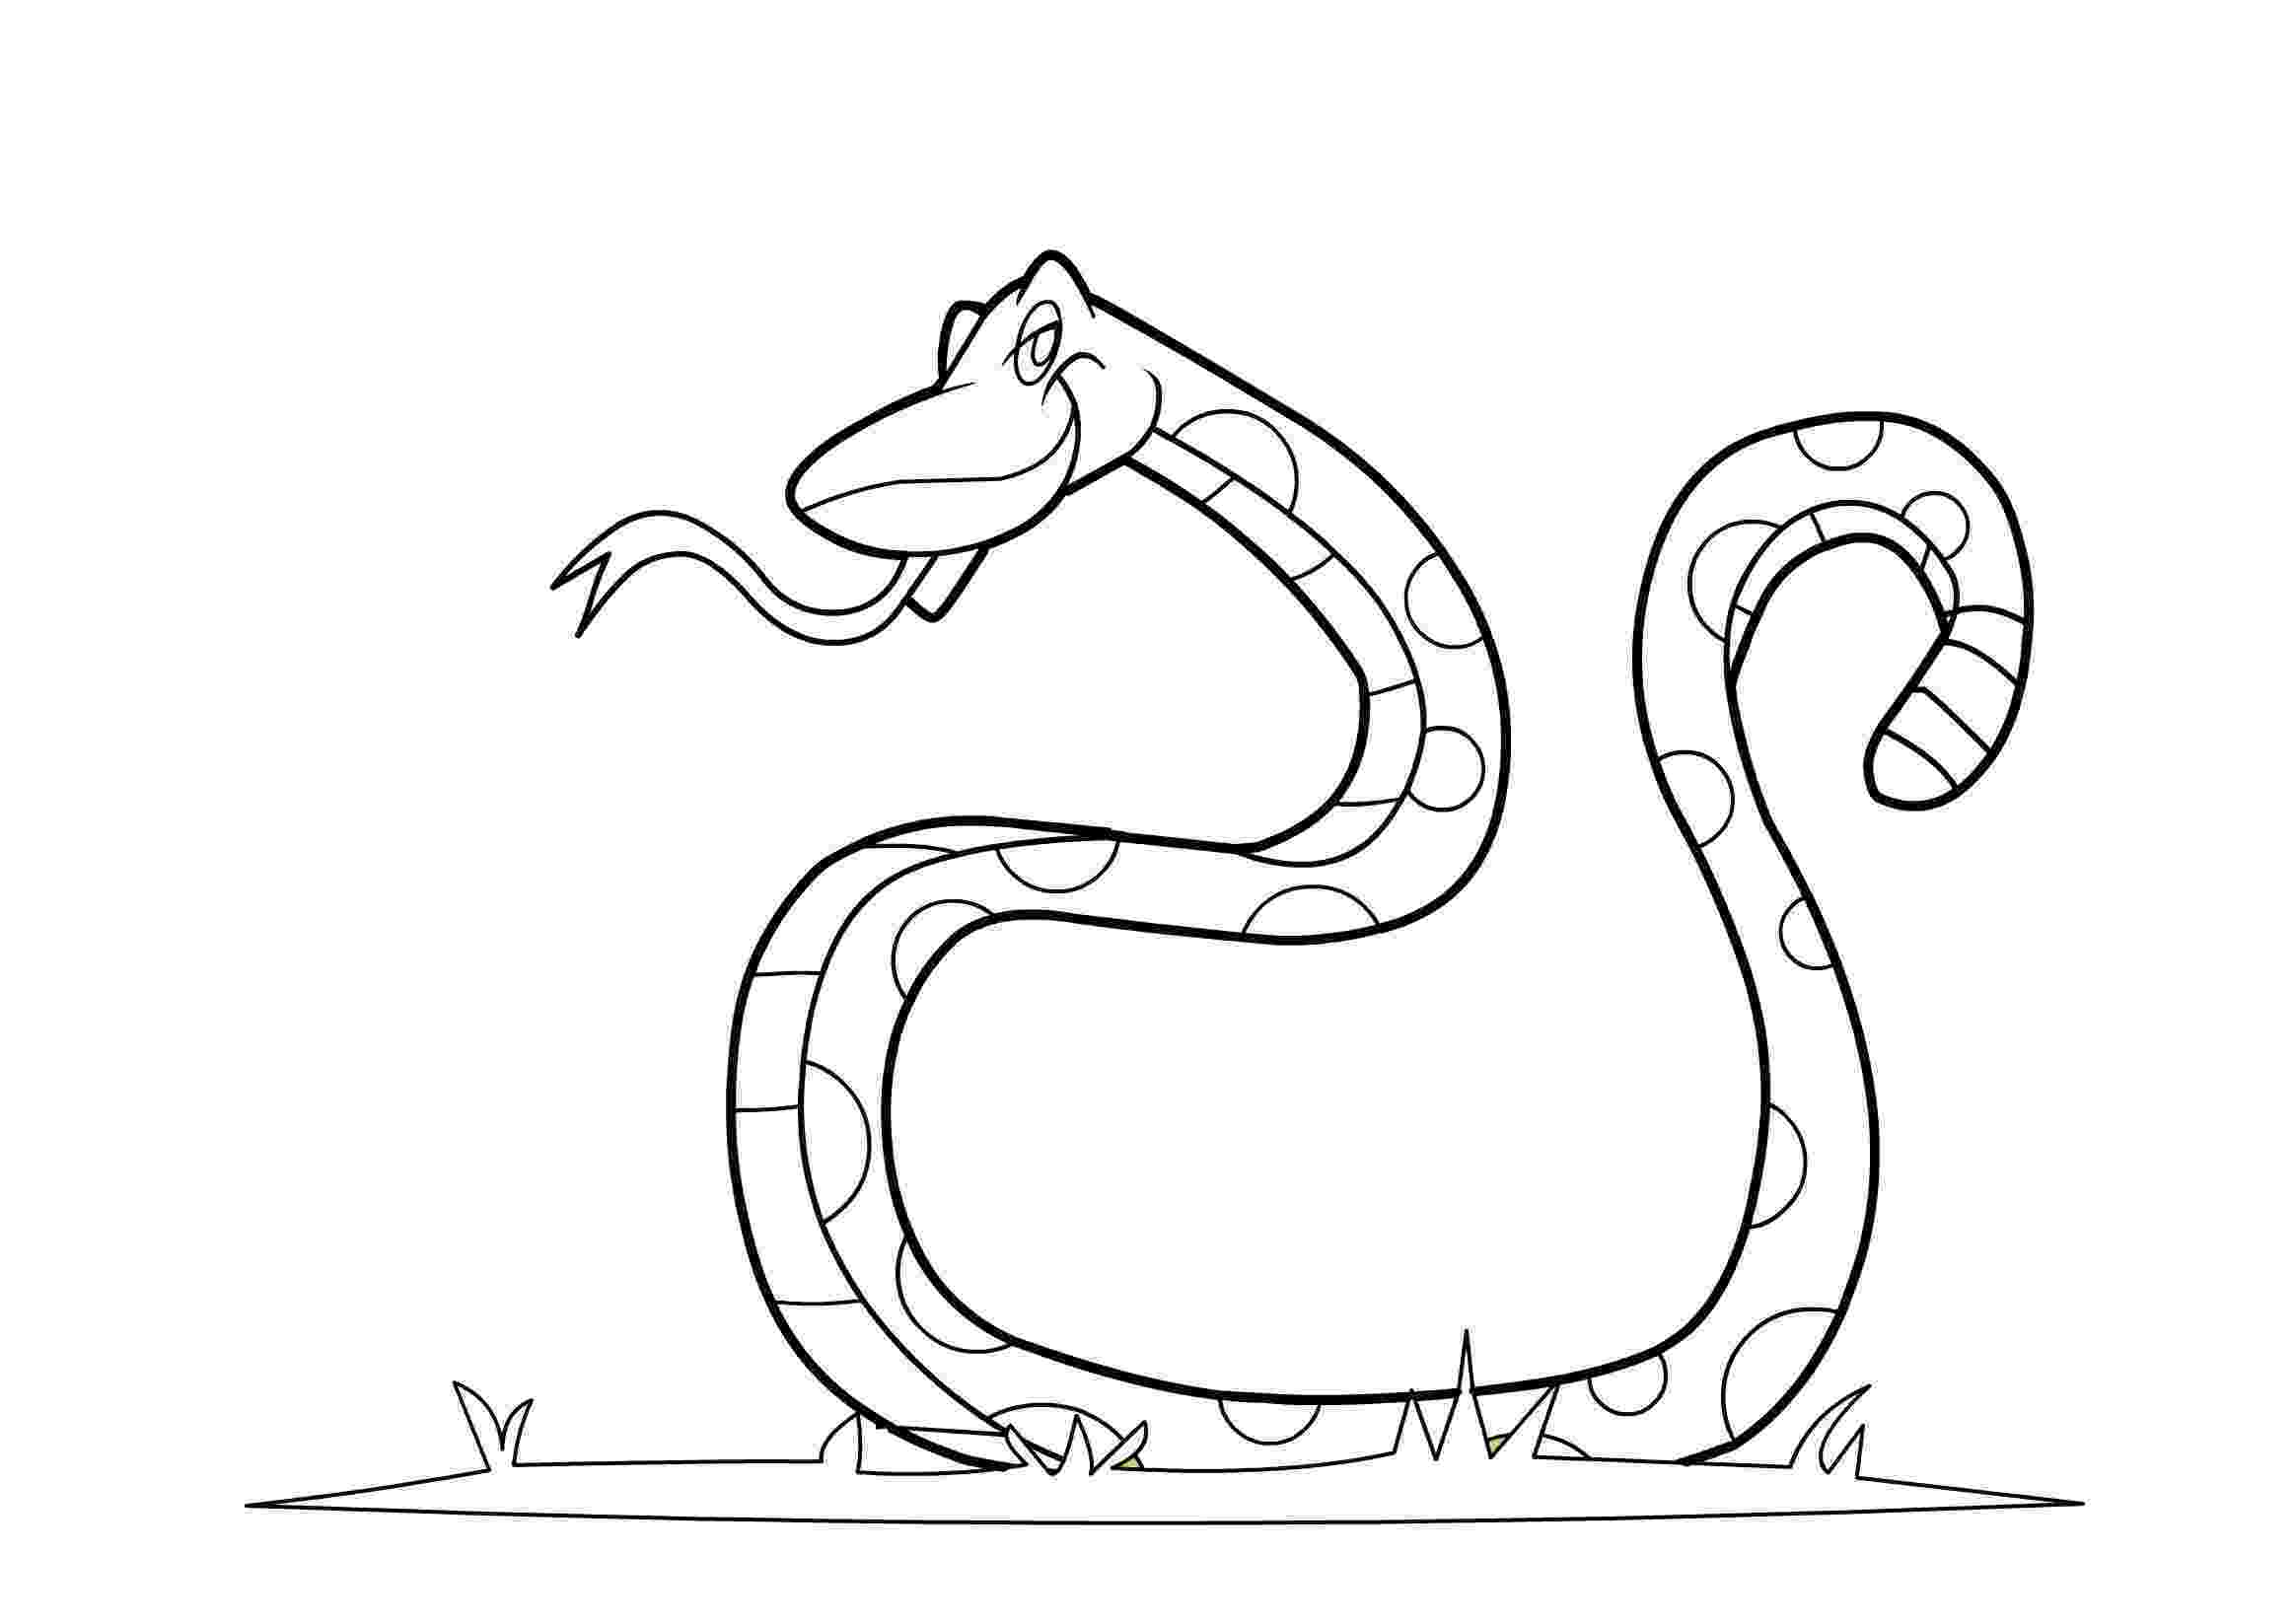 coloring pictures of snakes march 2010 of coloring pictures snakes